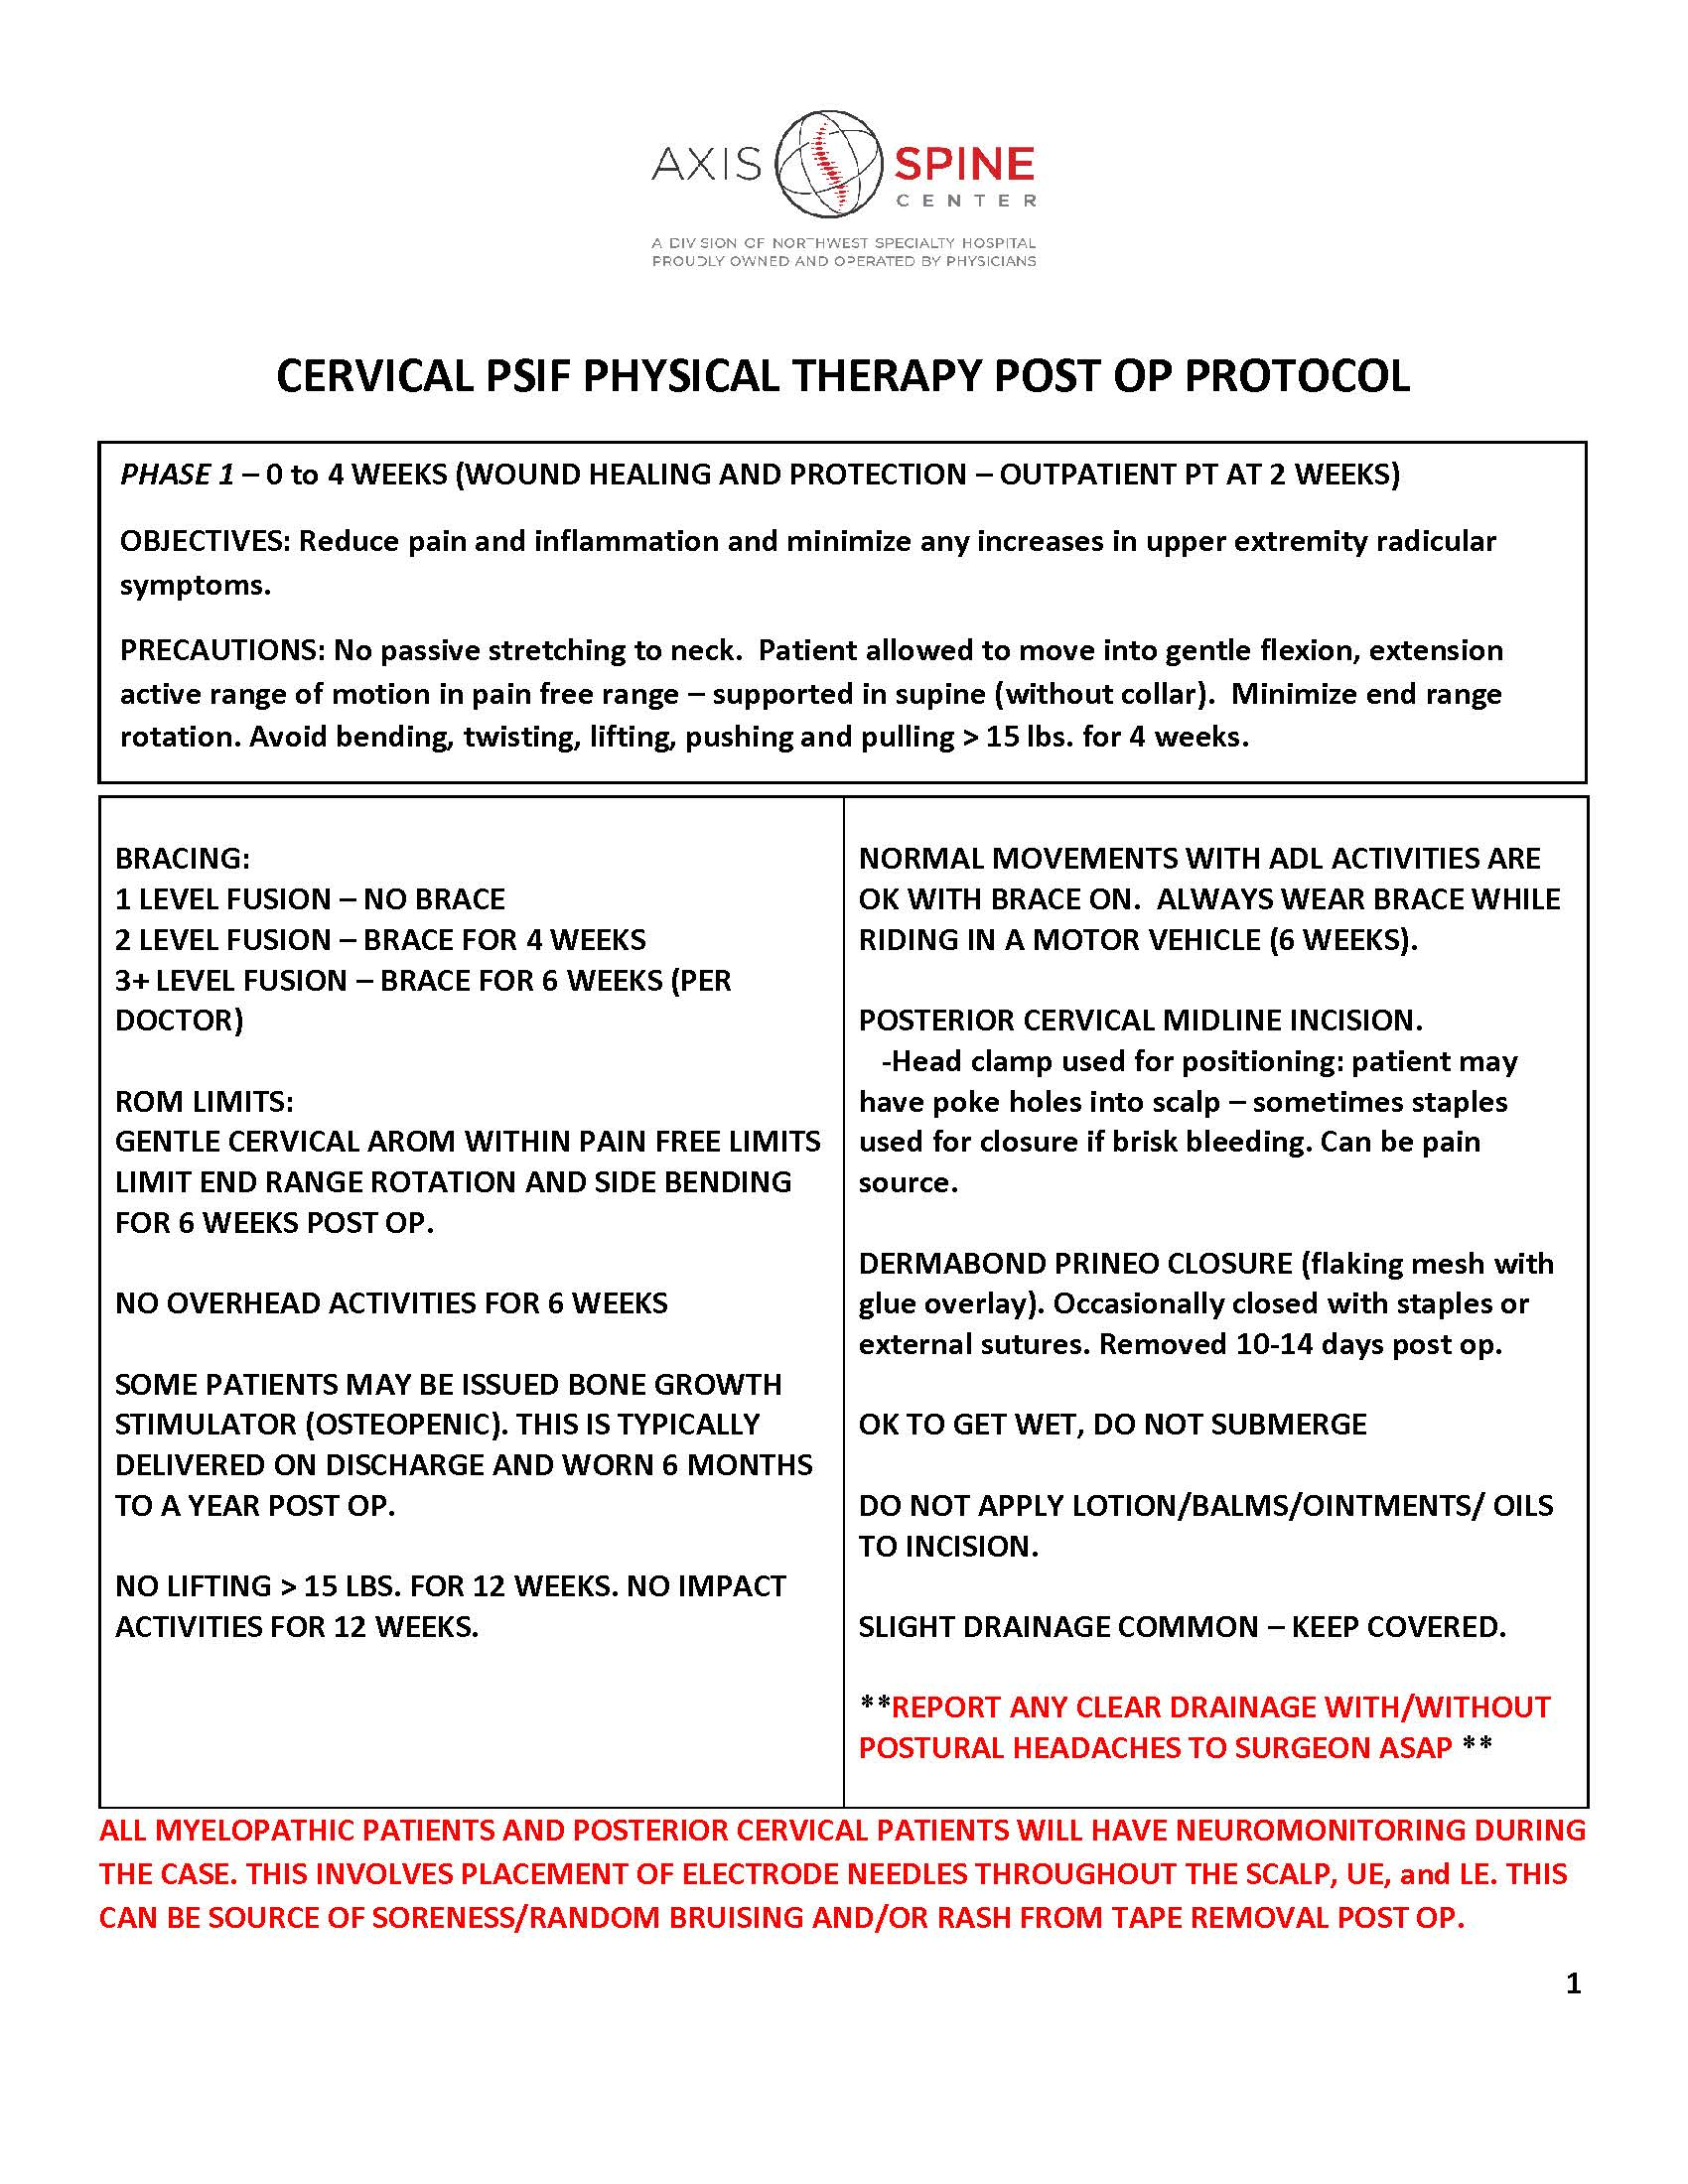 PSIF CERVICAL FUSION PHYSICAL THERAPY POST OP PROTOCOL